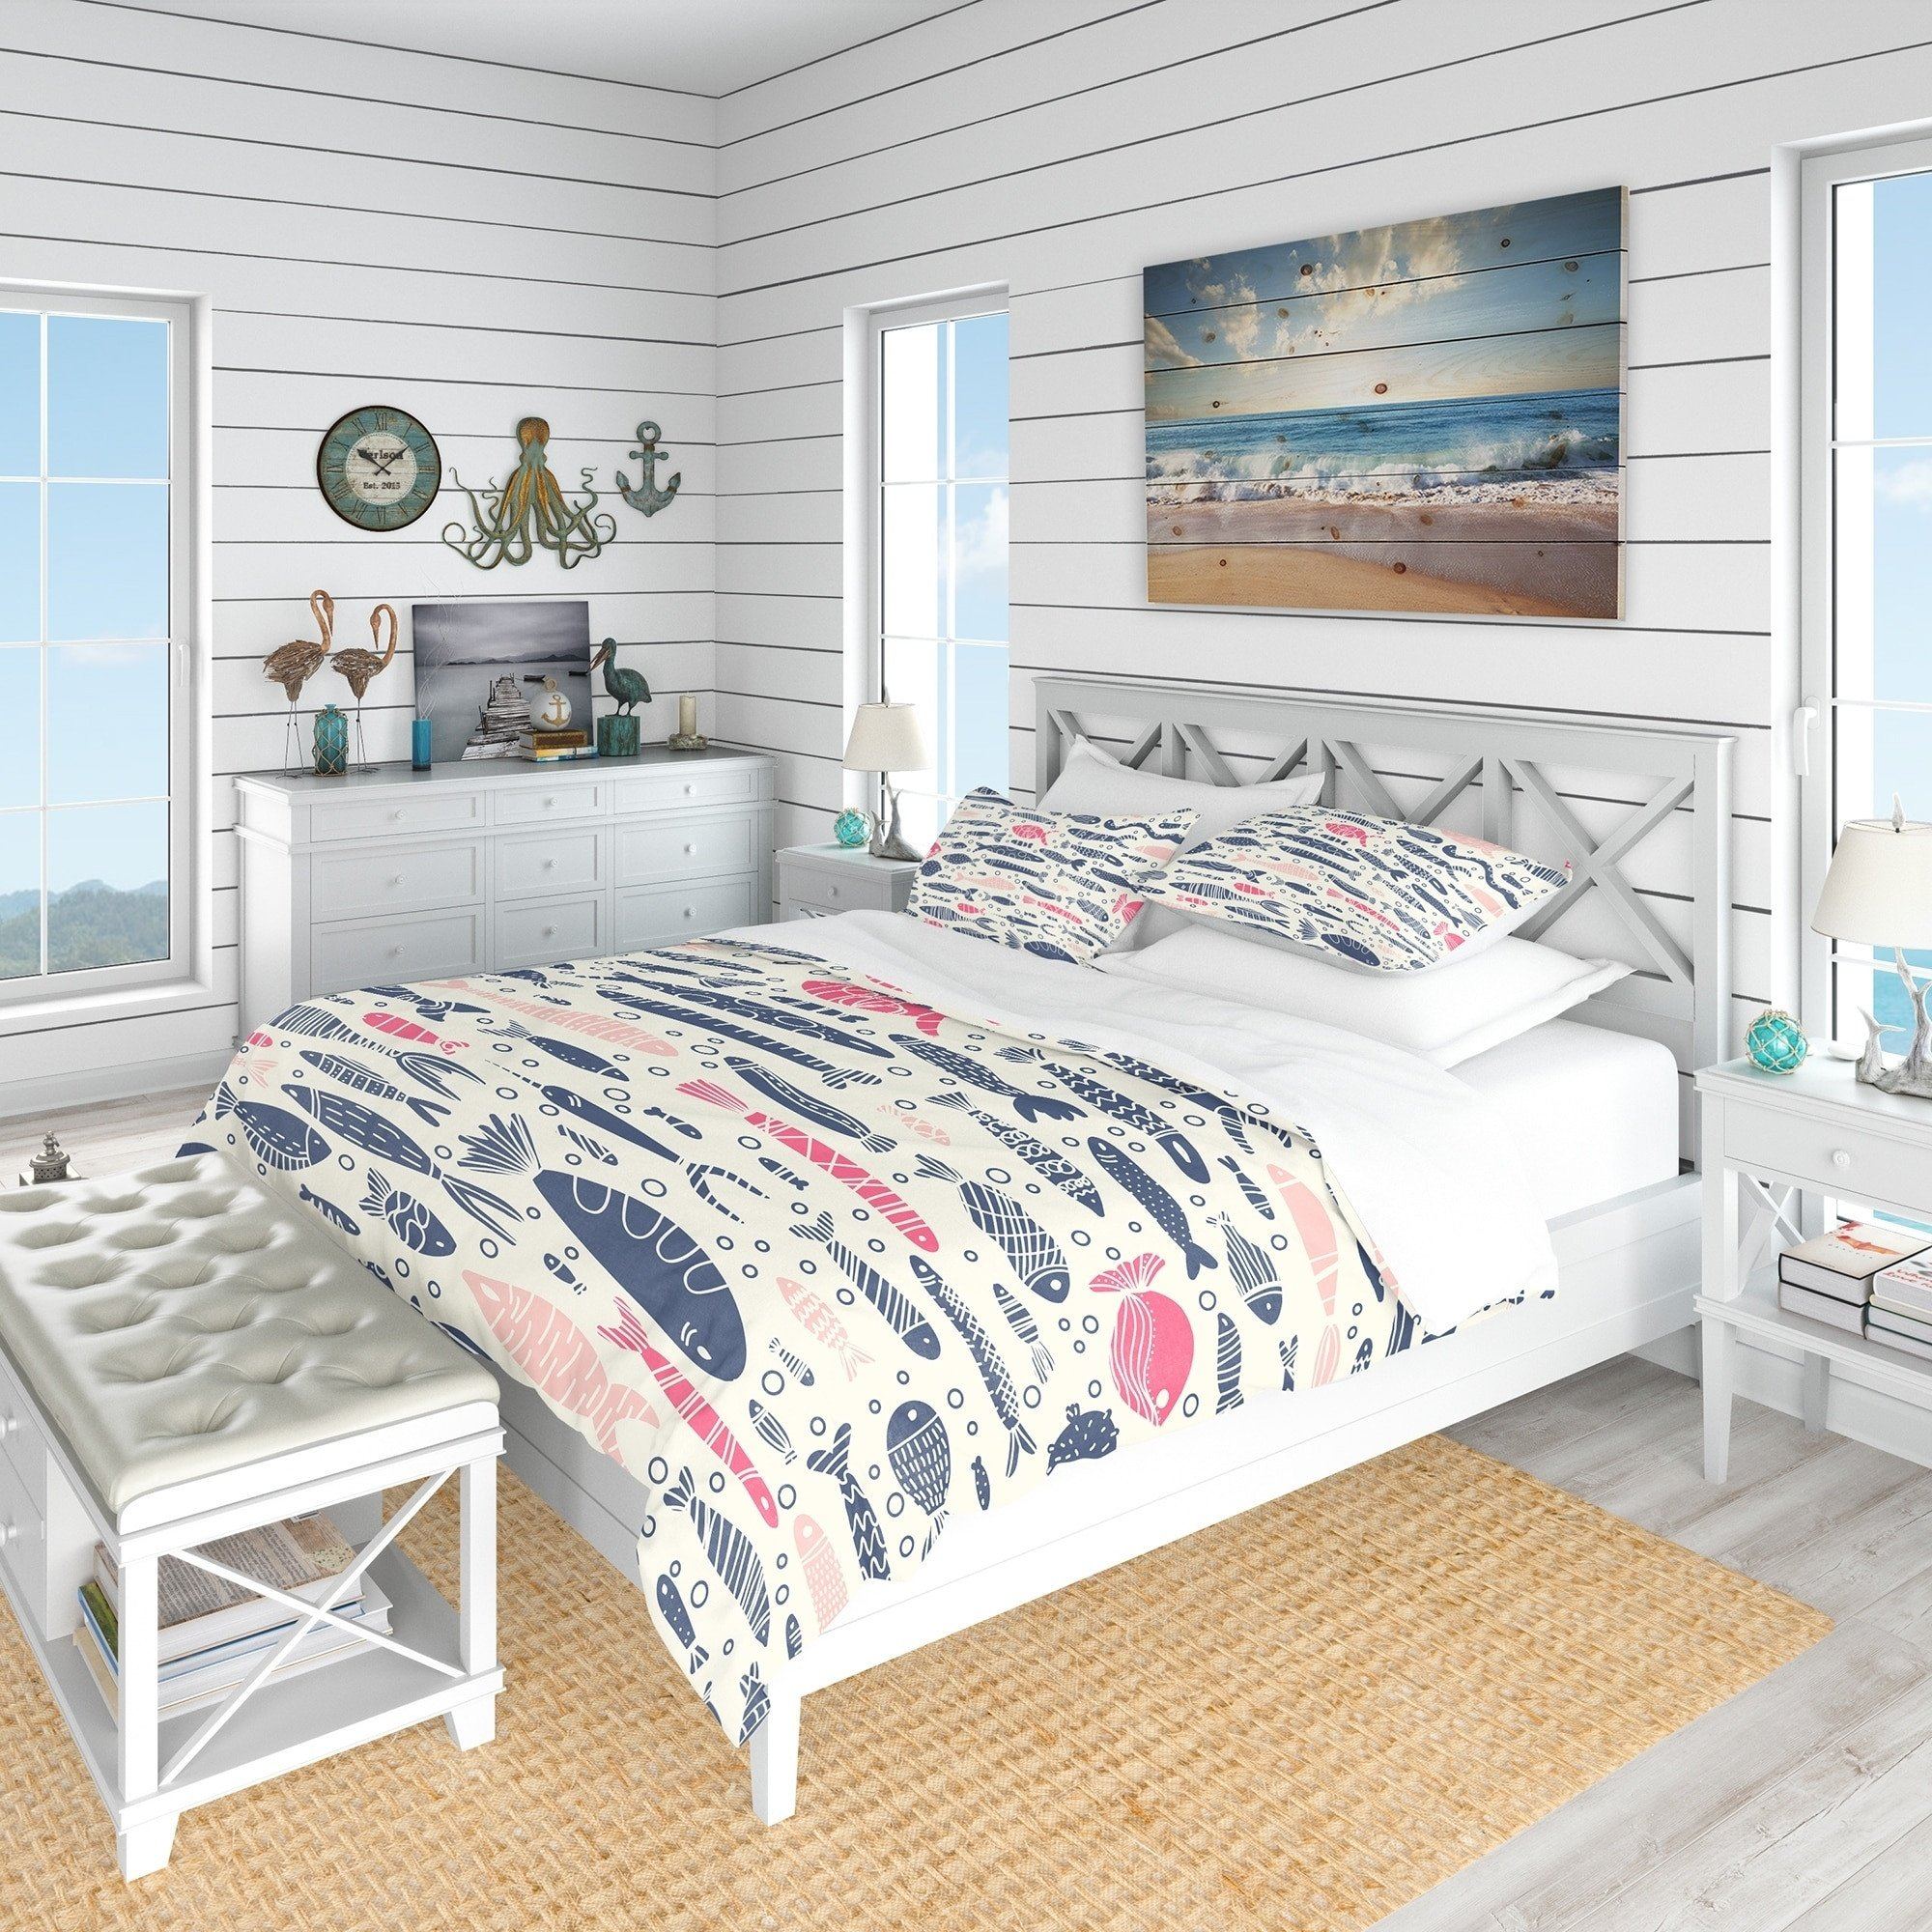 White Coastal Bedroom Furniture Lovely Designart Cute Fishes with Doodles Nautical & Coastal Bedding Set Duvet Cover & Shams